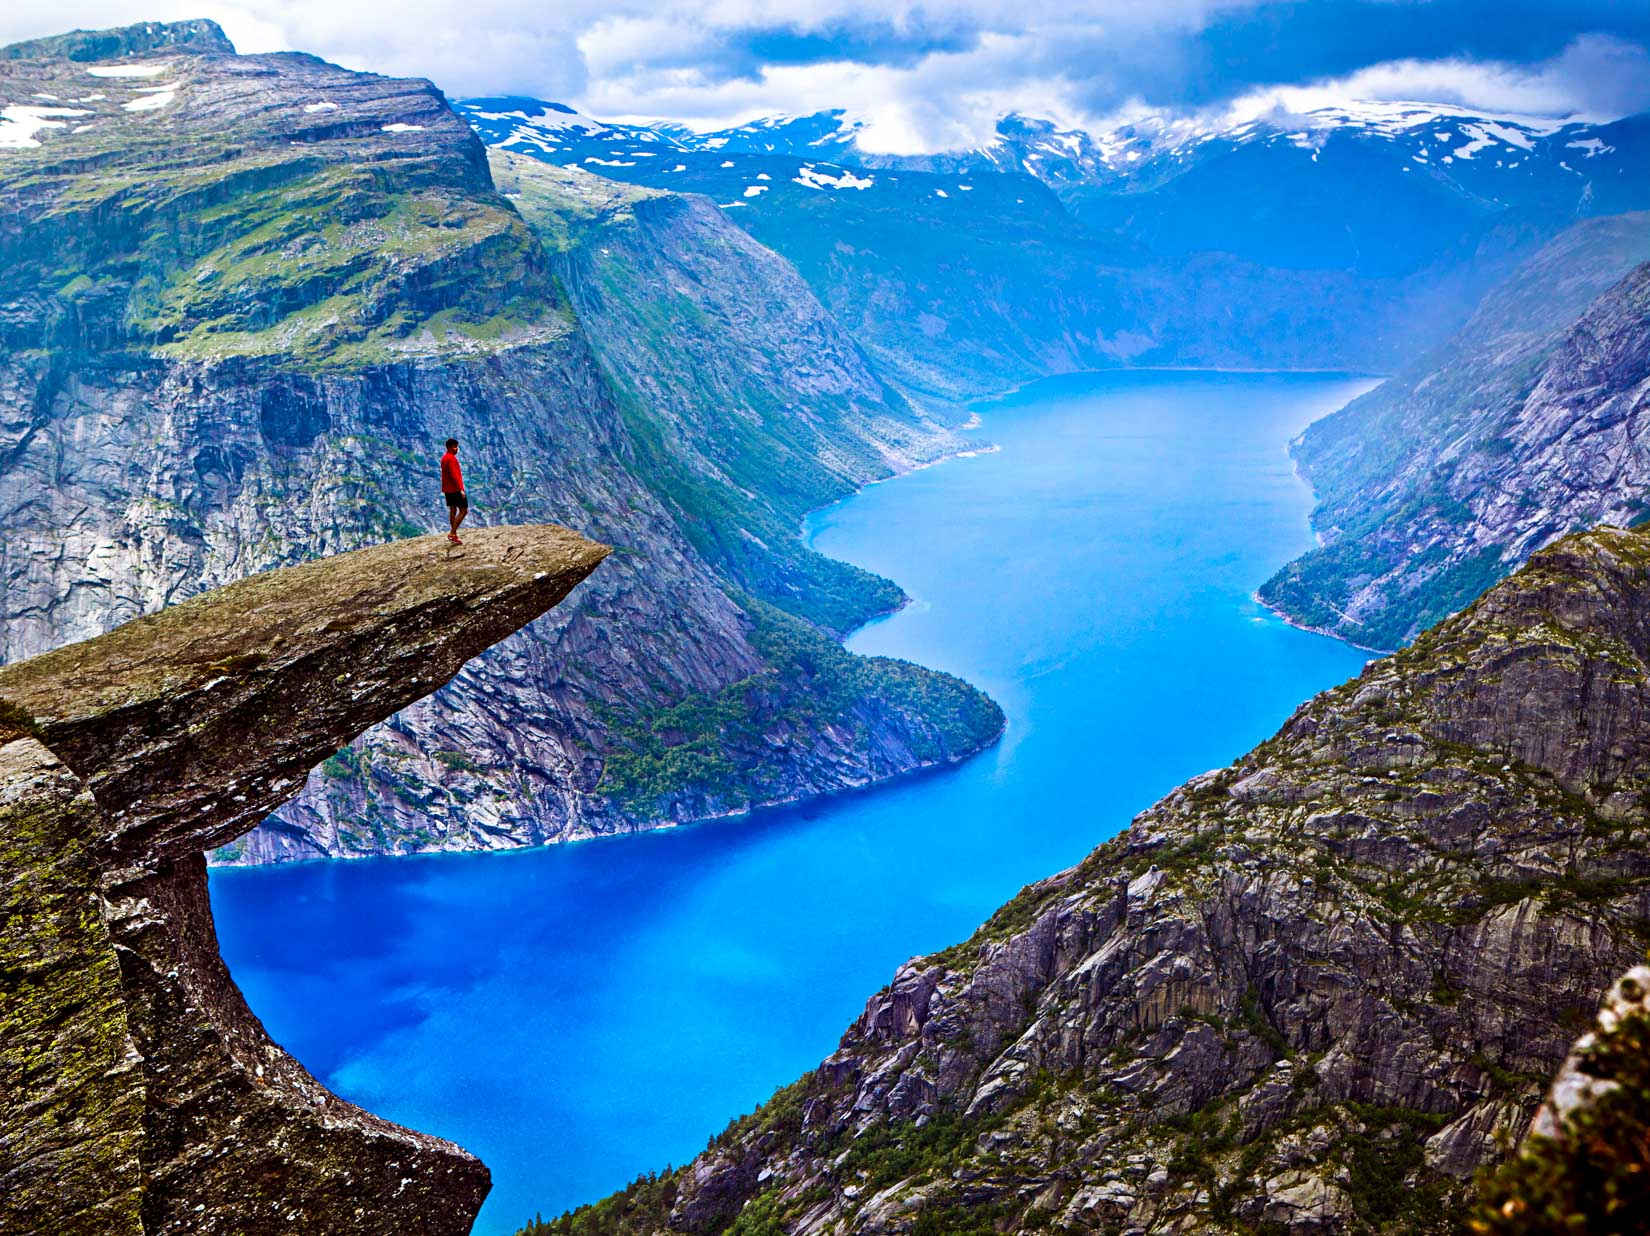 Hiker stands on rocky overlook in Norway